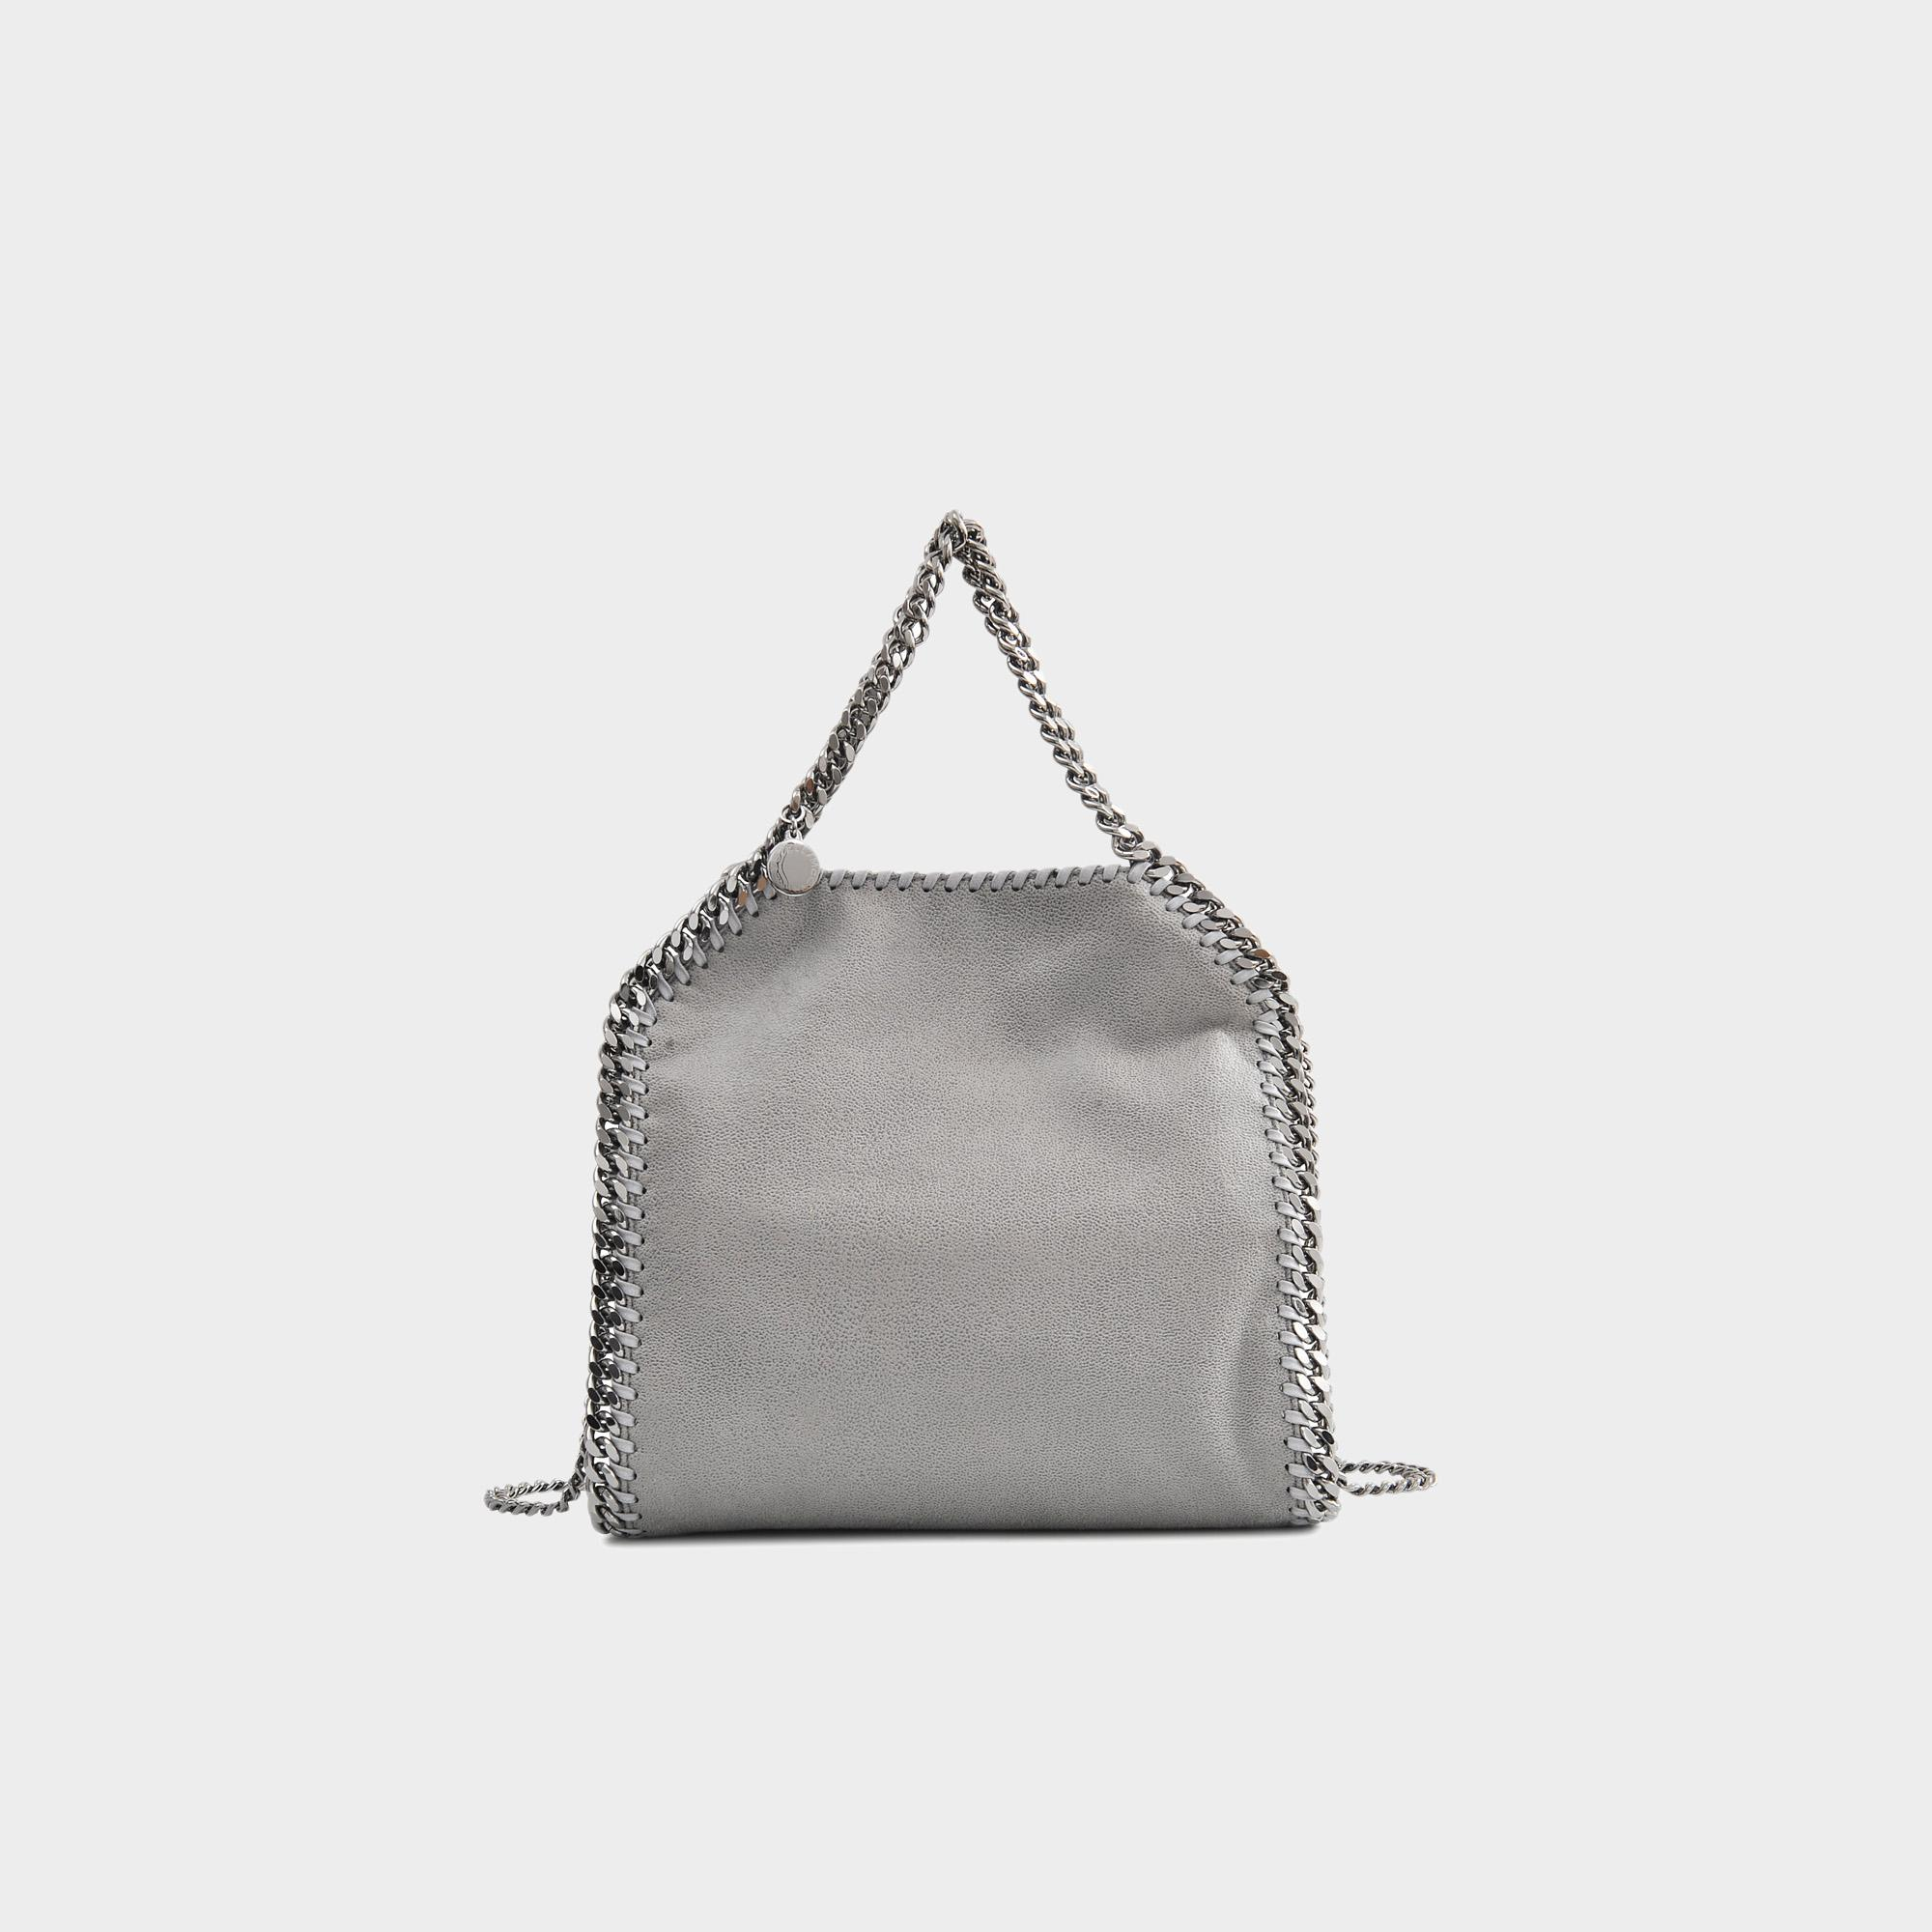 Stella McCartney. Women s Gray Mini Tote Shaggy Deer Falabella In Light ... f2eaf7bb84df9